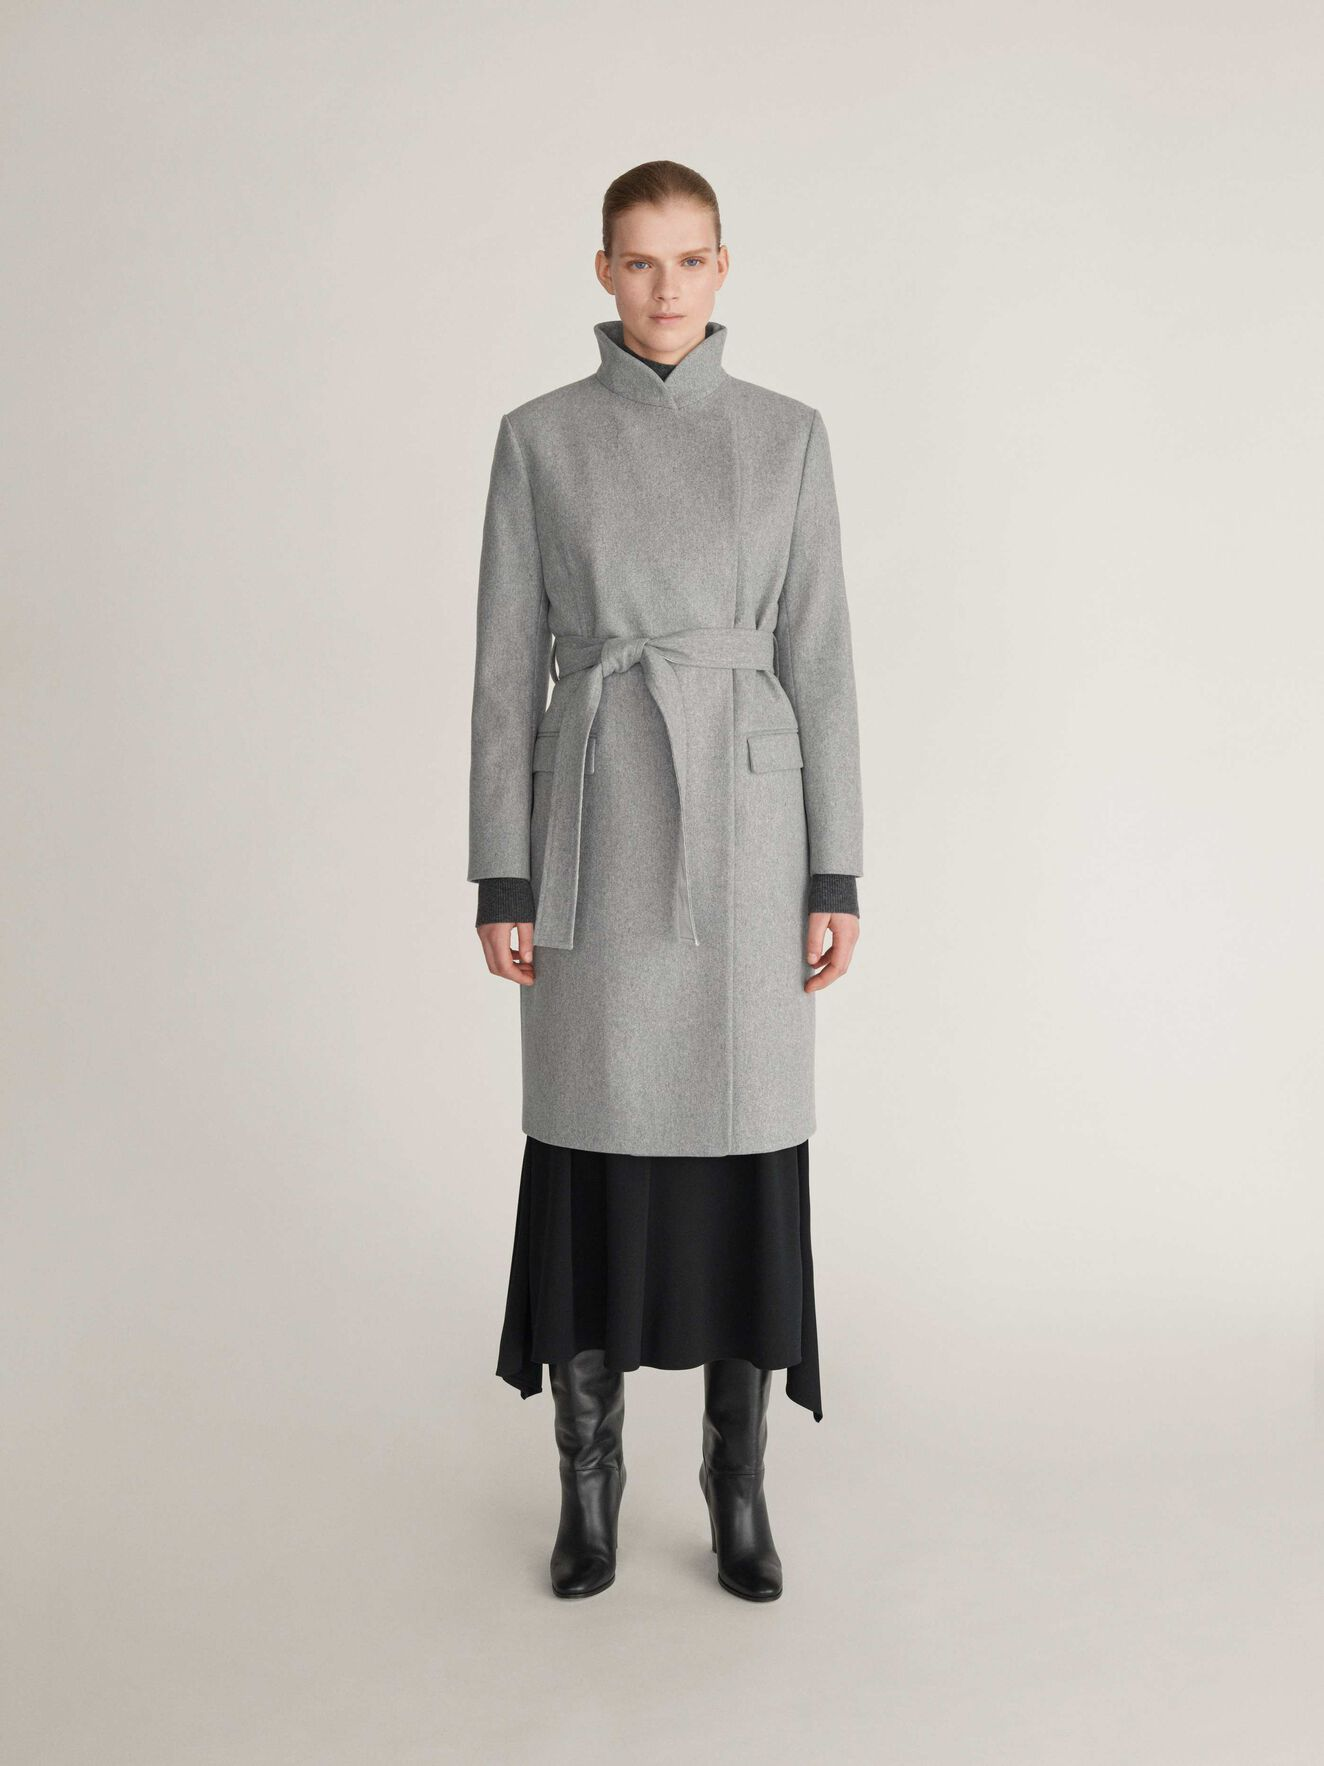 Knopp Coat in Light grey melange from Tiger of Sweden